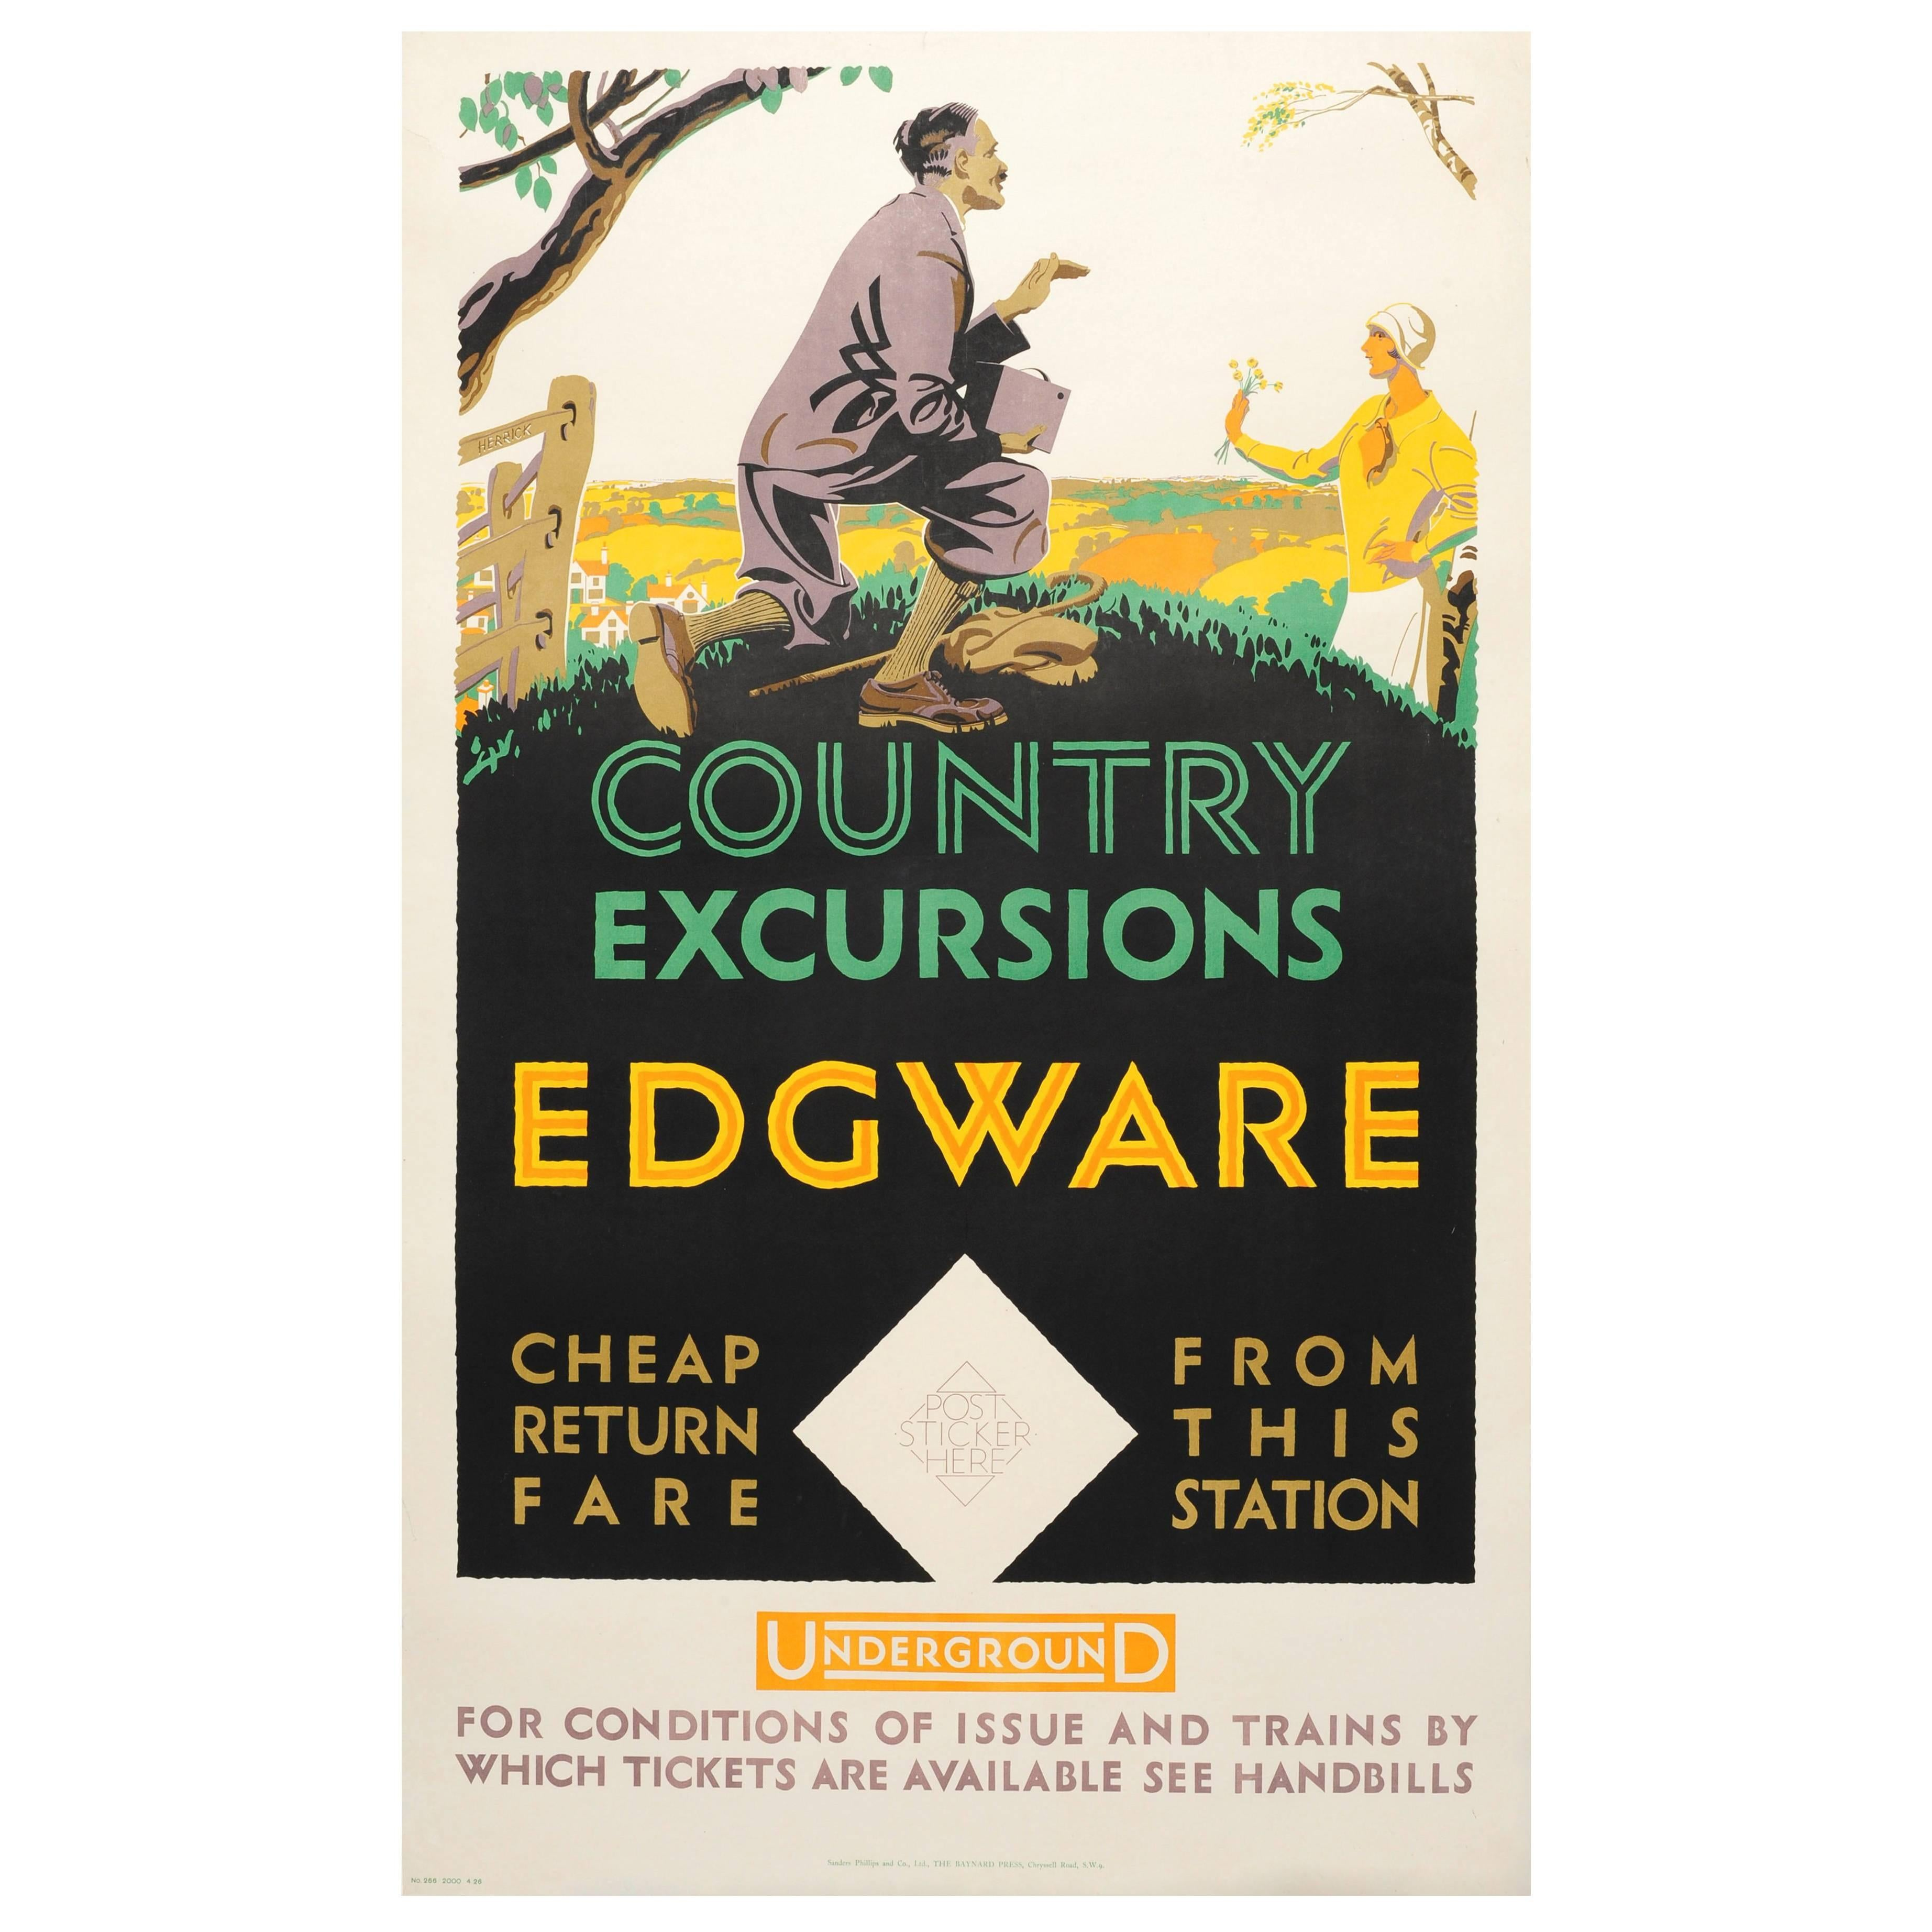 Original Vintage 1926 London Underground Poster for Country Excursions Edgware